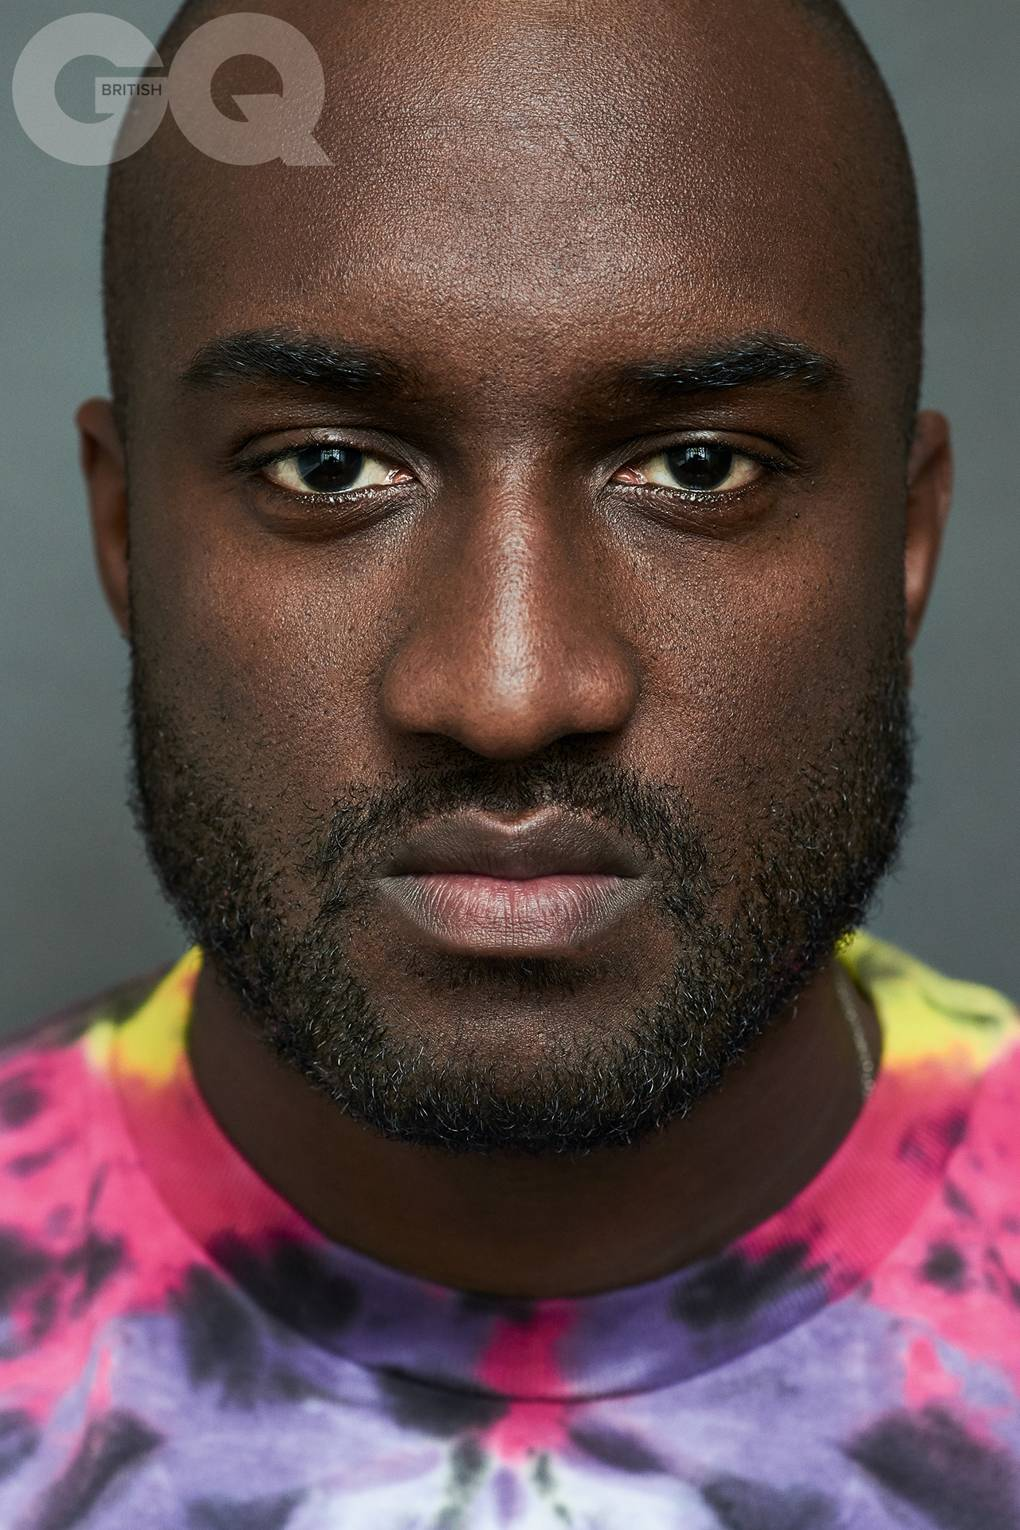 18a26d58a1e Virgil Abloh interview   I now have a platform to change the industry... So  I should